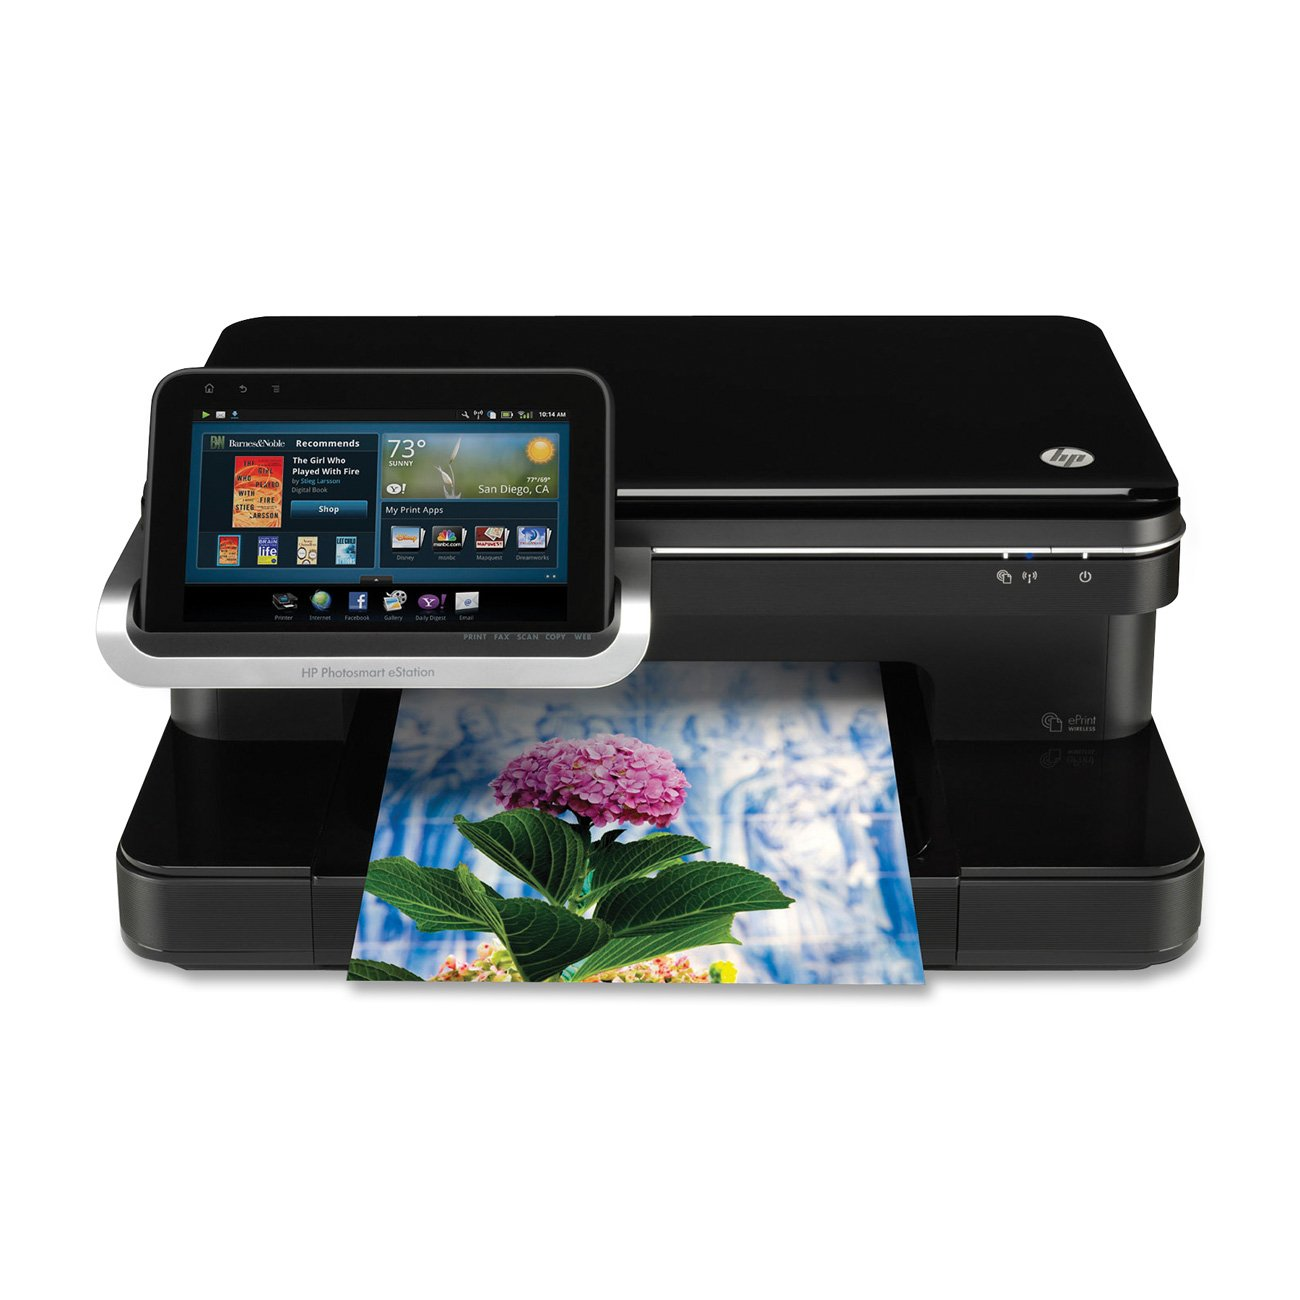 amazon com hp photosmart estation all in one cq140ab1h electronics rh amazon com hp photosmart 5510 user manual Install HP Photosmart Wireless Printer